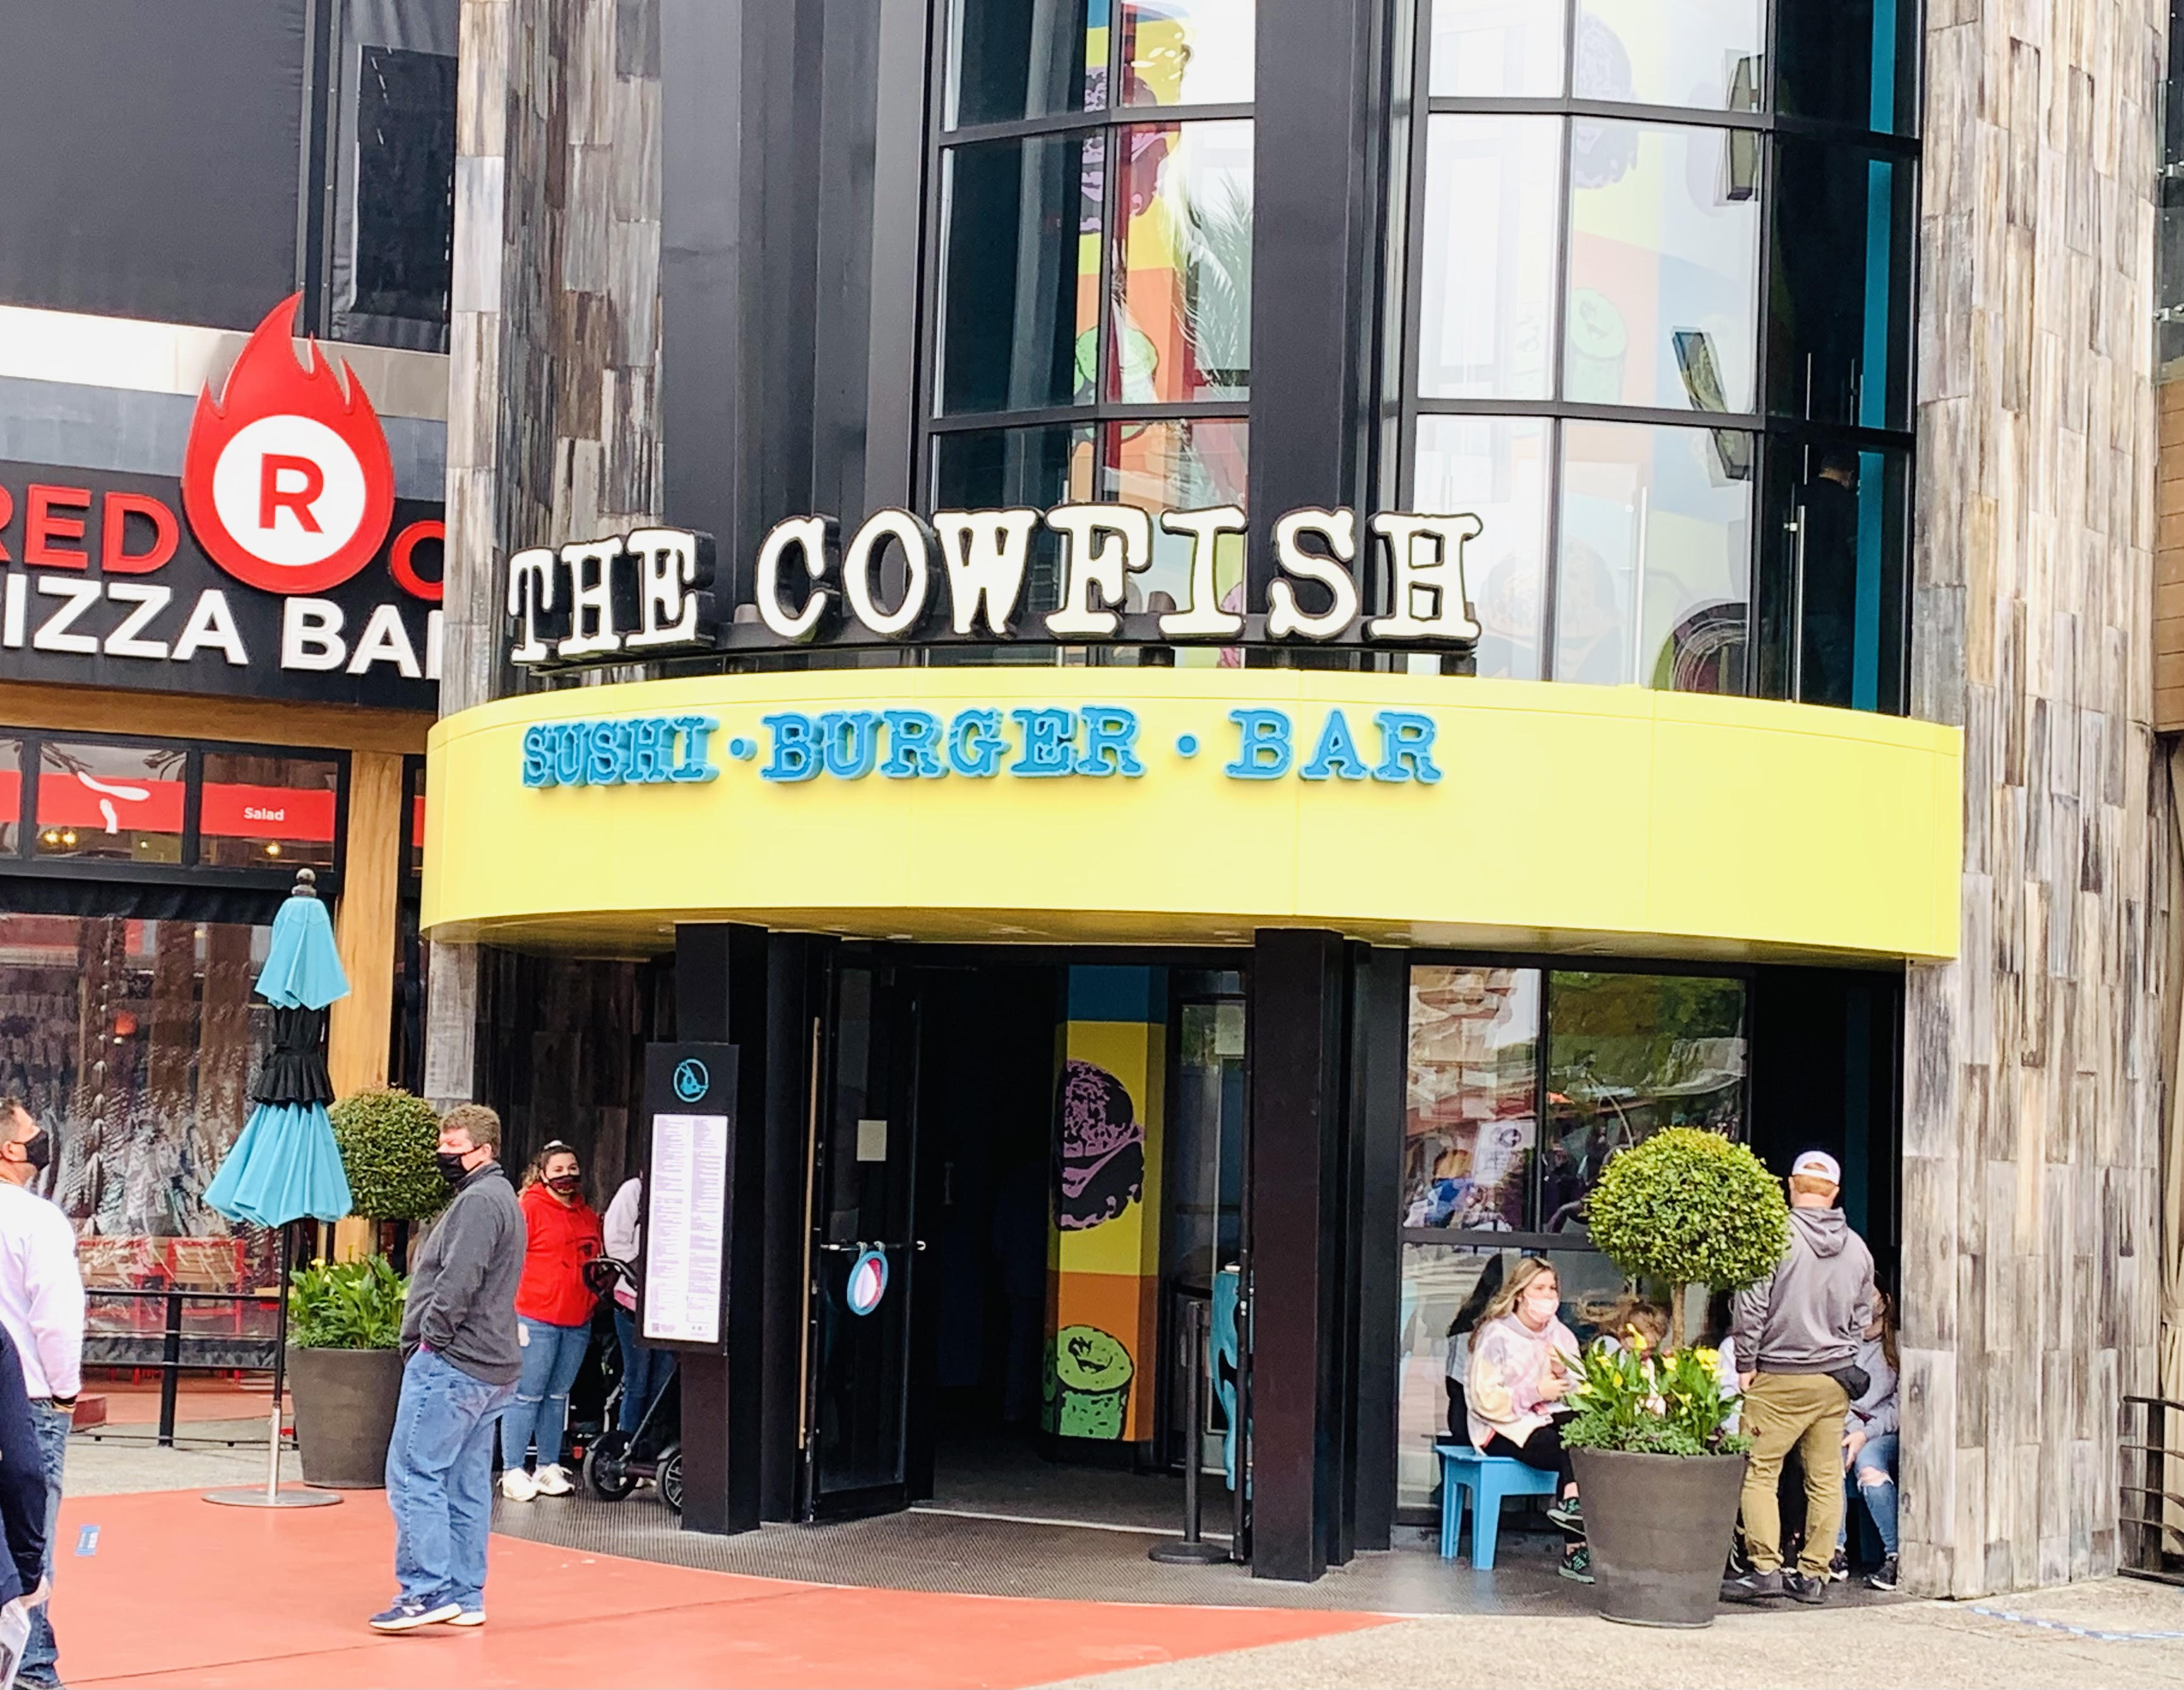 The 7 best restaurants in Citywalk ranked by top U.S. family travel blog, Travel With A Plan! (Cowfish)